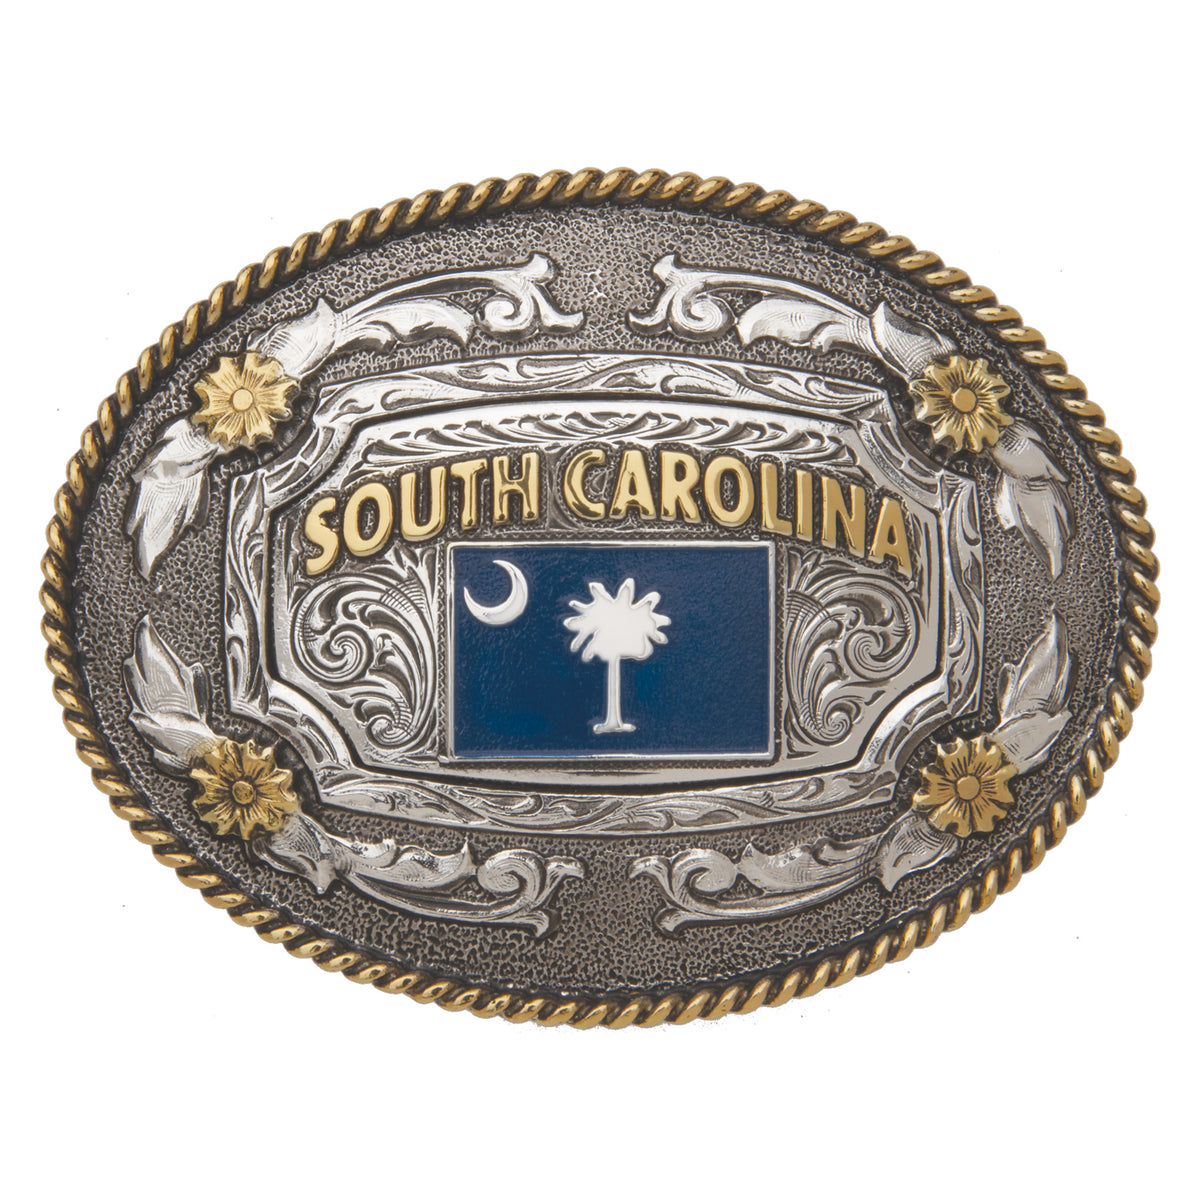 South Carolina Flag— Oval Rope Edge Buckle